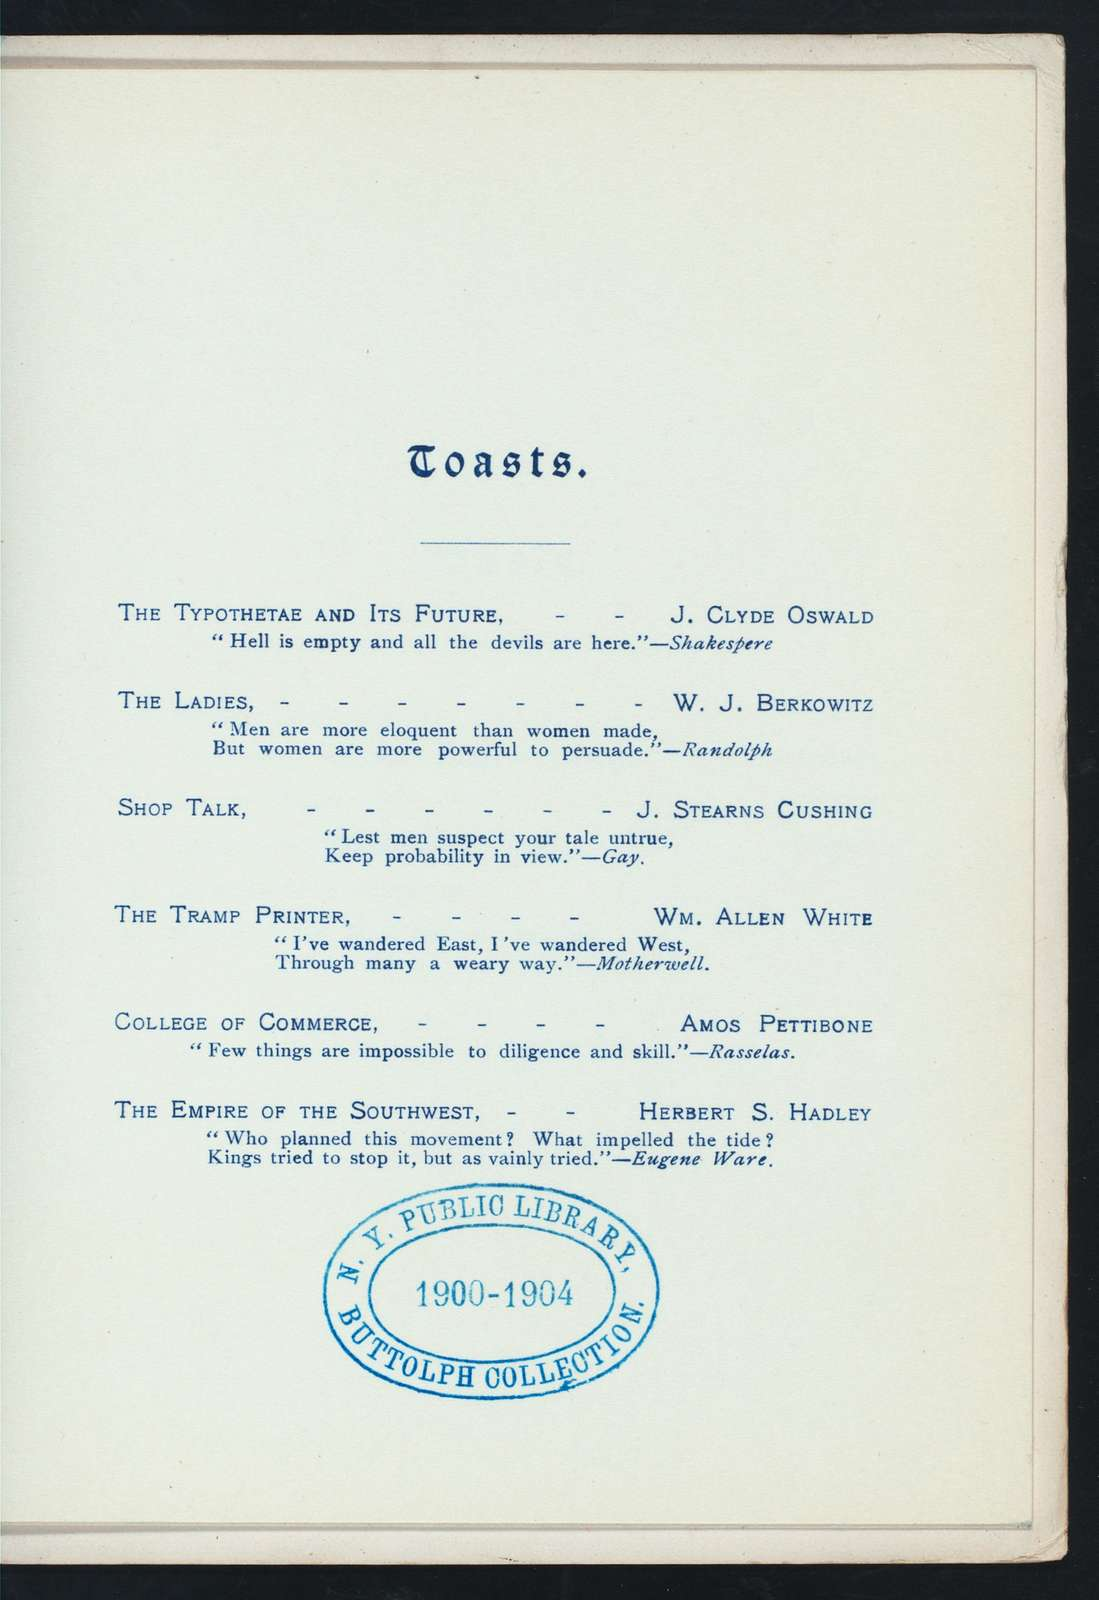 """14NTH ANNUAL BANQUET [held by] UNITED TYPOTHETAE OF AMERICA [at] """"THE BALTIMORE, KANSAS CITY,MO"""" (HOTEL;)"""